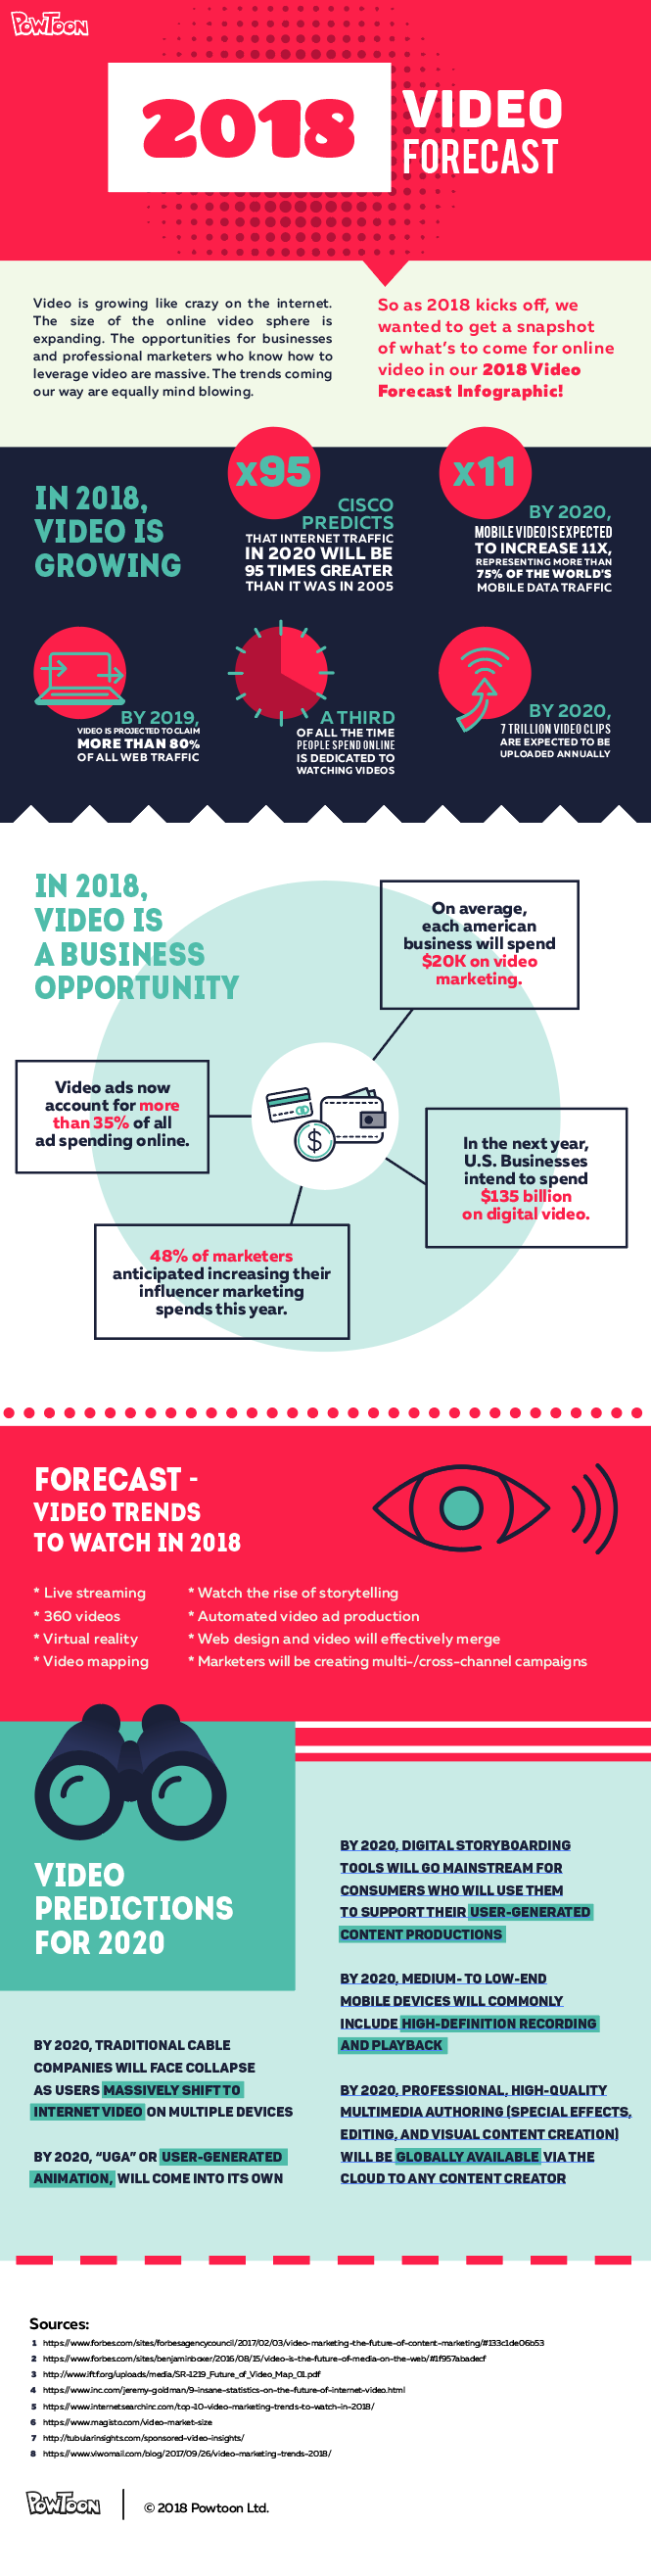 2018 Video forecast infograhpic Powtoon https://www.powtoon.com/blog/2018-video-forecast-infographic/